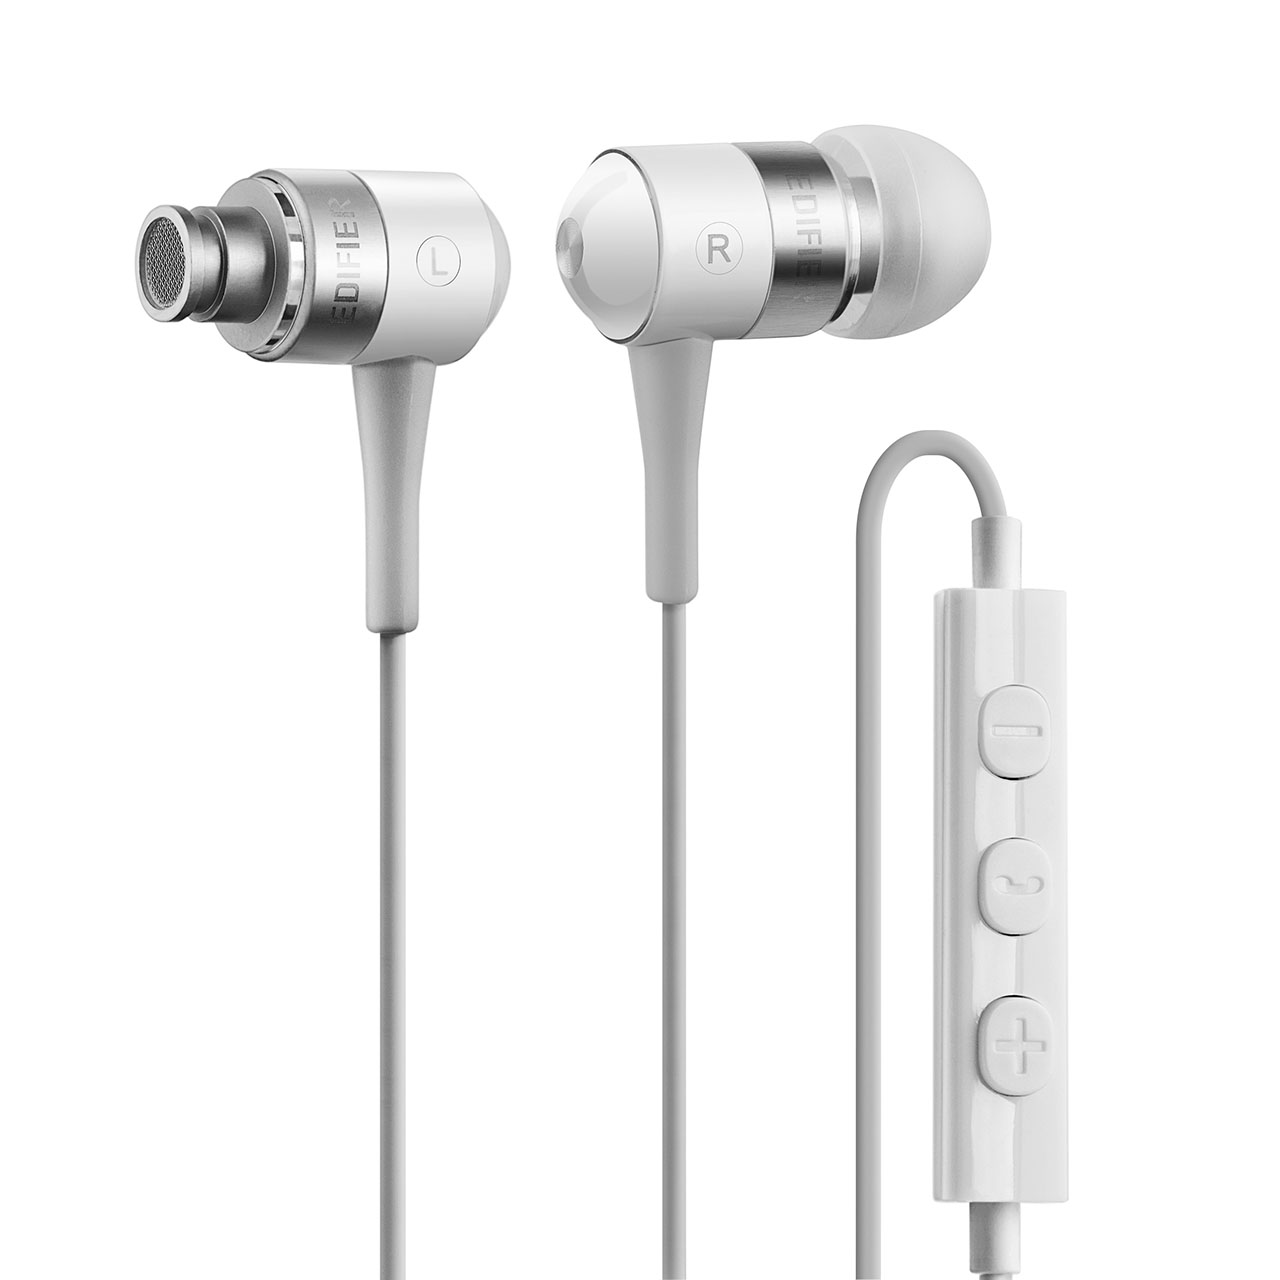 iphone headphone controls i285 in ear iphone apple controls earphone edifier usa 11915